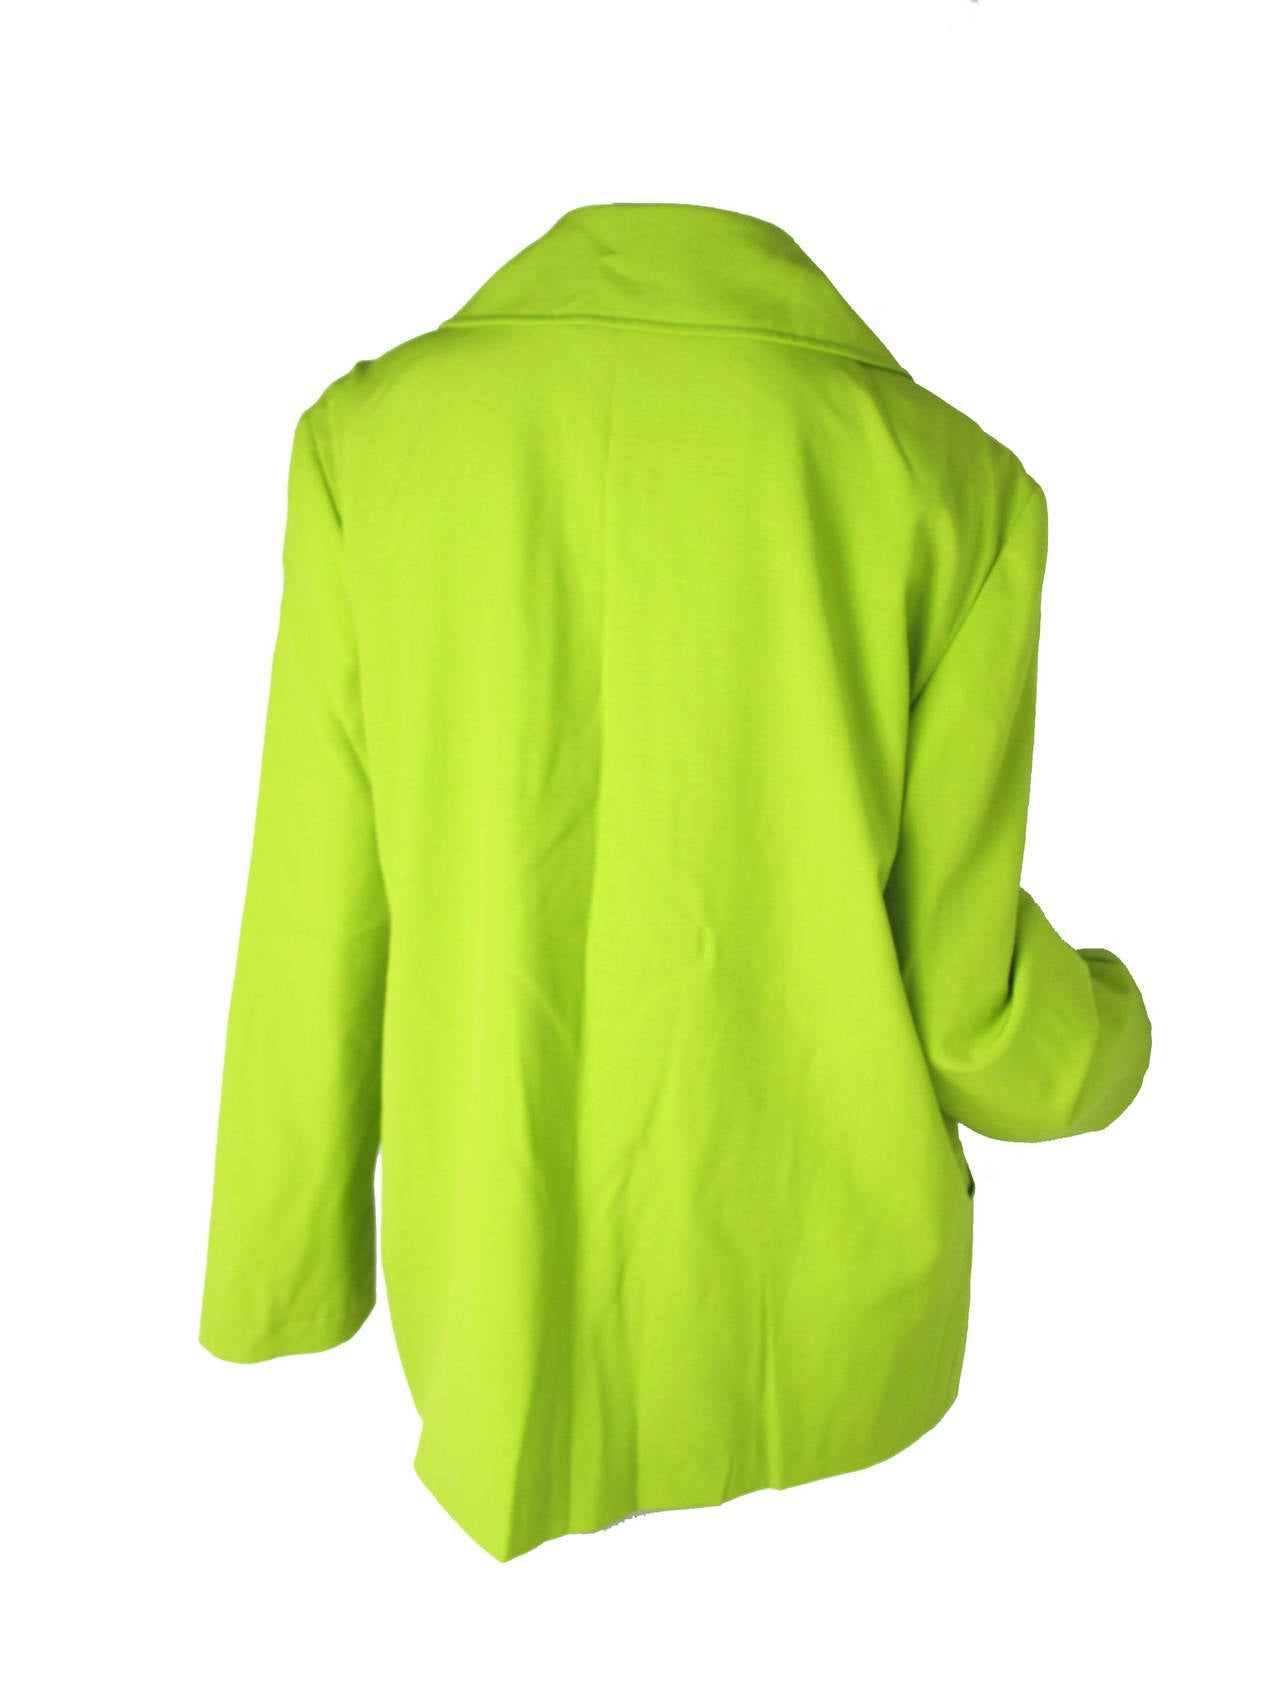 "Christian Lacroix neon green light wool jacket with Two front pockets.  Made in Italy.  44"" bust, 44"" waist, 24 1/2"" sleeve, 18"" shoulder, 27 1/2"" length. Condition: Excellent. Size 14"